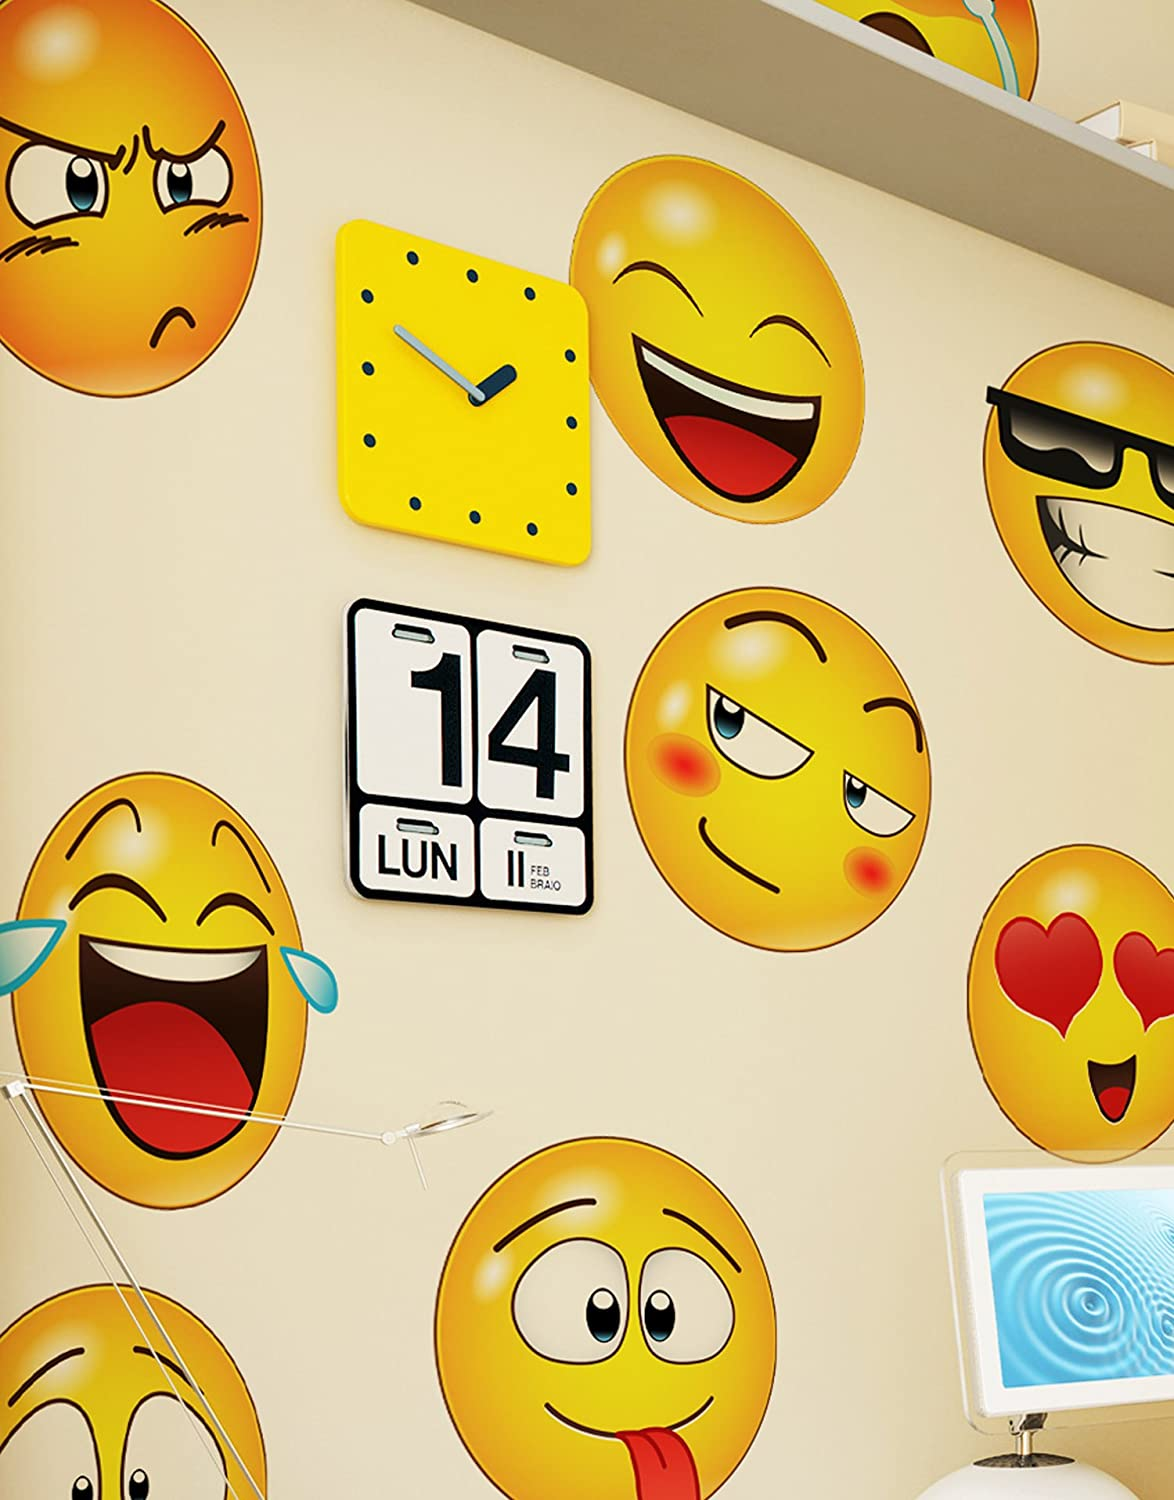 Emoji Icons Faces Wall Stickers Decal 6052 10in X 10in Emoji Faces Amazon Com